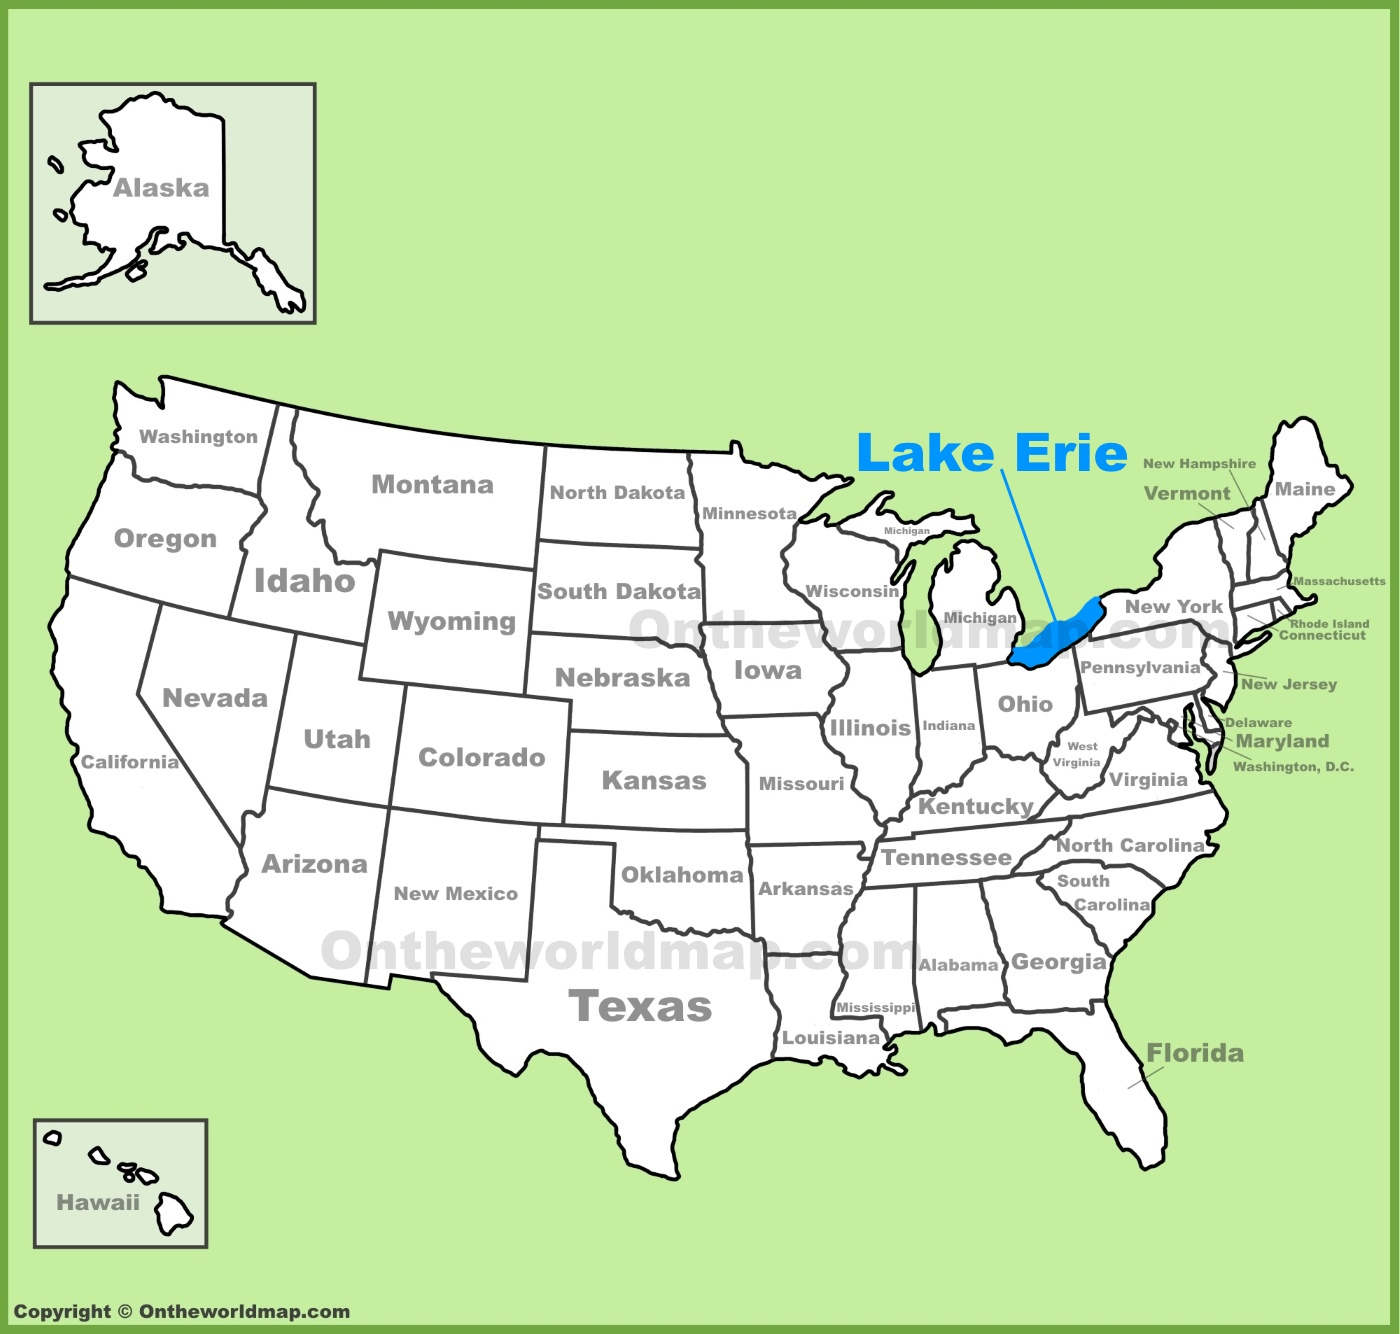 Lake Erie location on the US Map